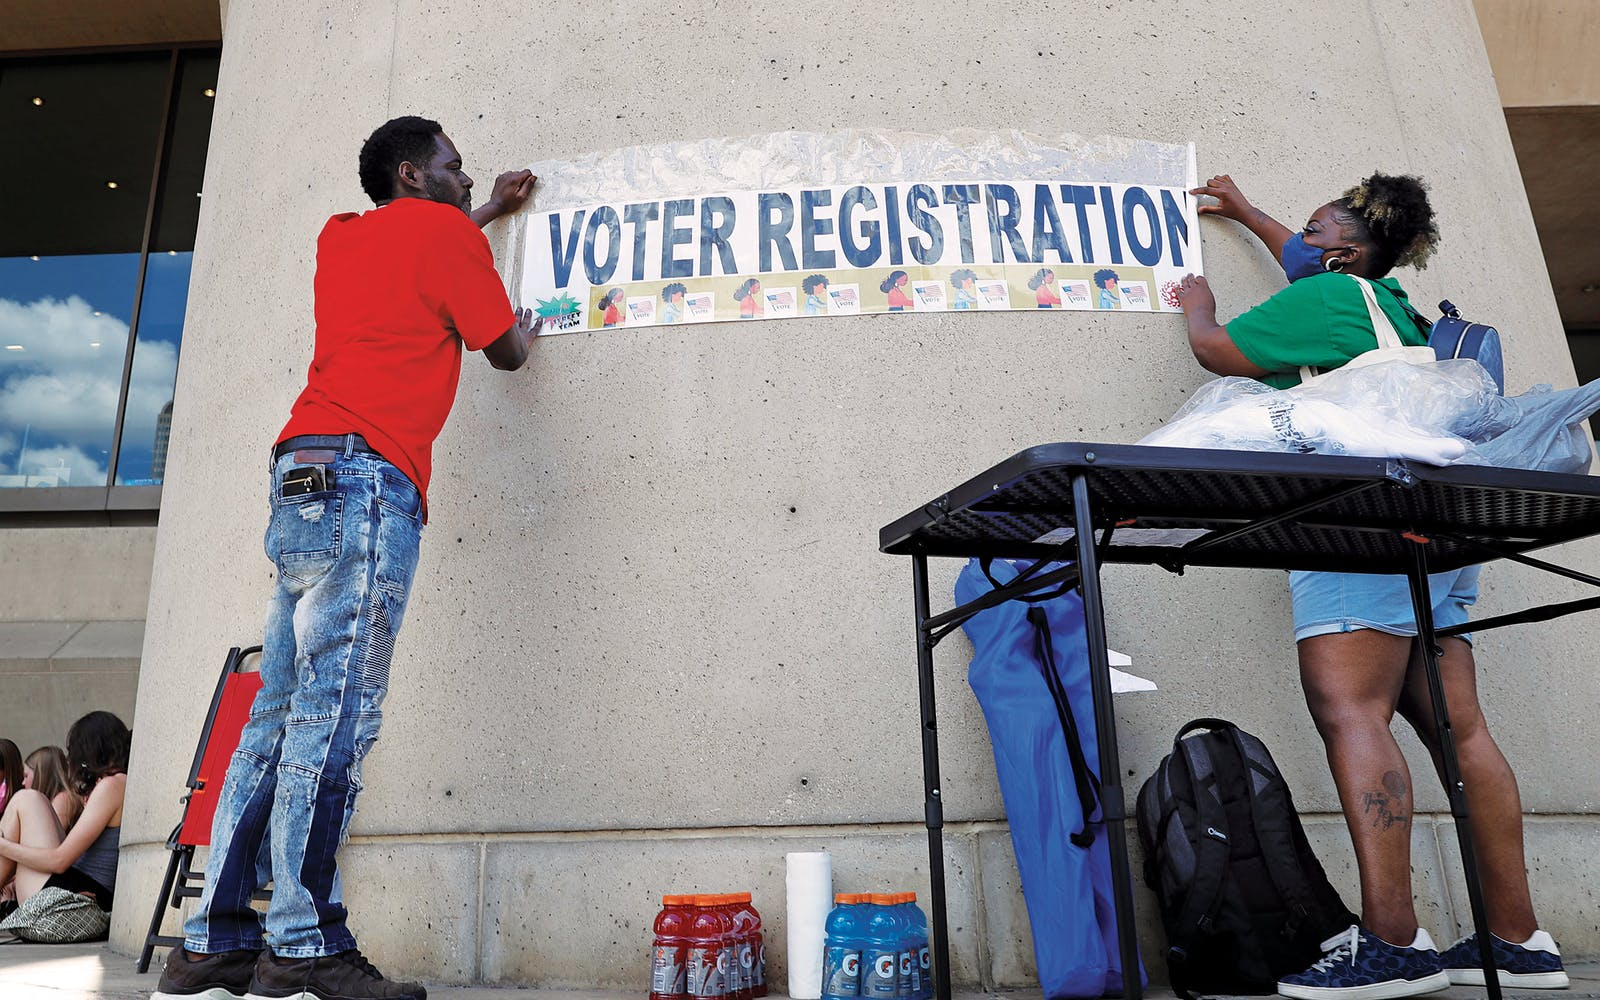 Aetry Jones, left, and Caerry Rigbon tape up a voter registration sign on Dallas City Hall before a Juneteenth 2020 celebration and protest against police brutality in Dallas, on June 19, 2020.